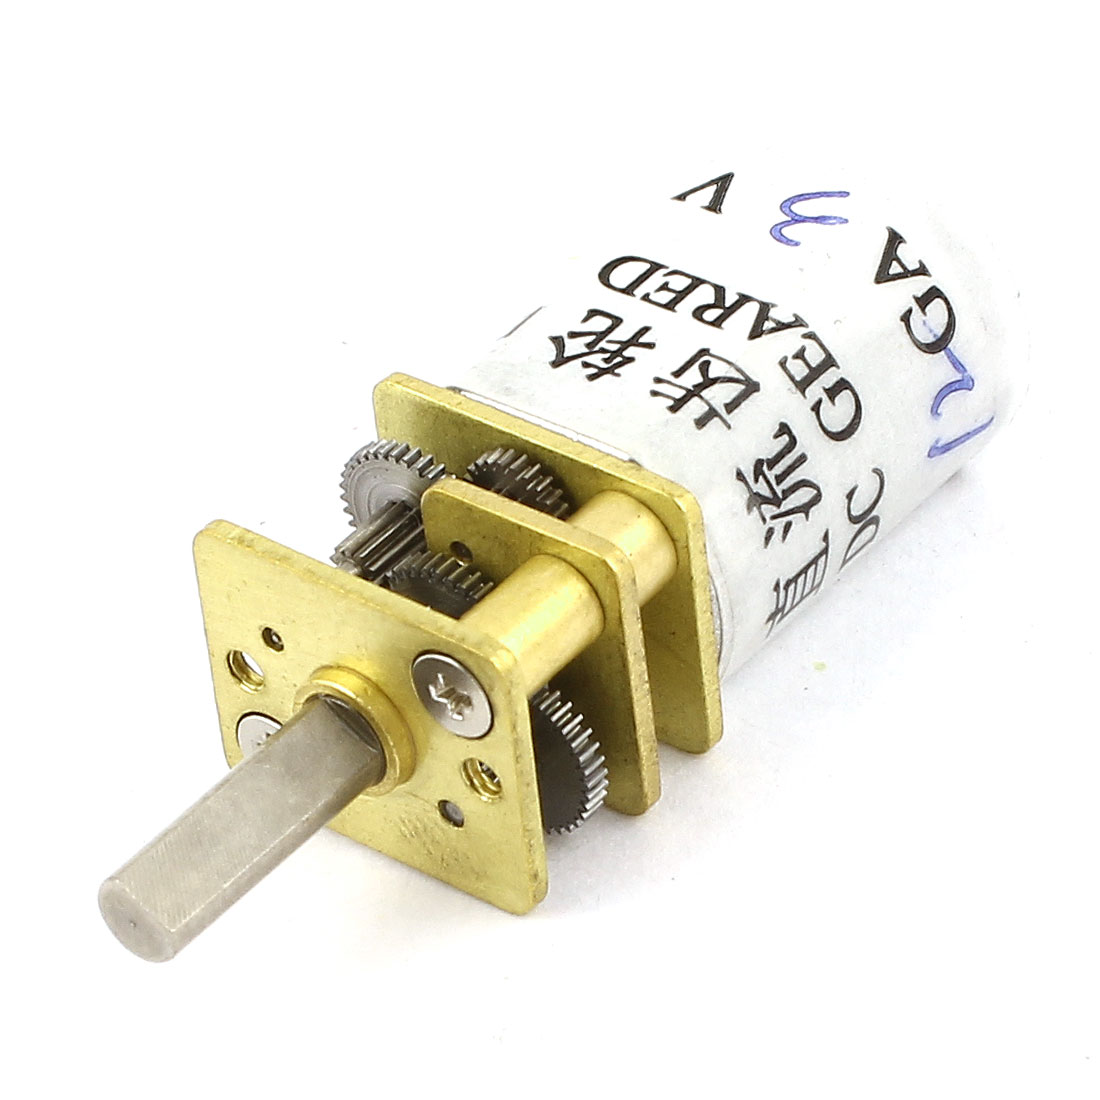 DC 3V 50RPM 3mm Diameter D Shaft Cylinder Electric Geared Box Speed Reduce Motor